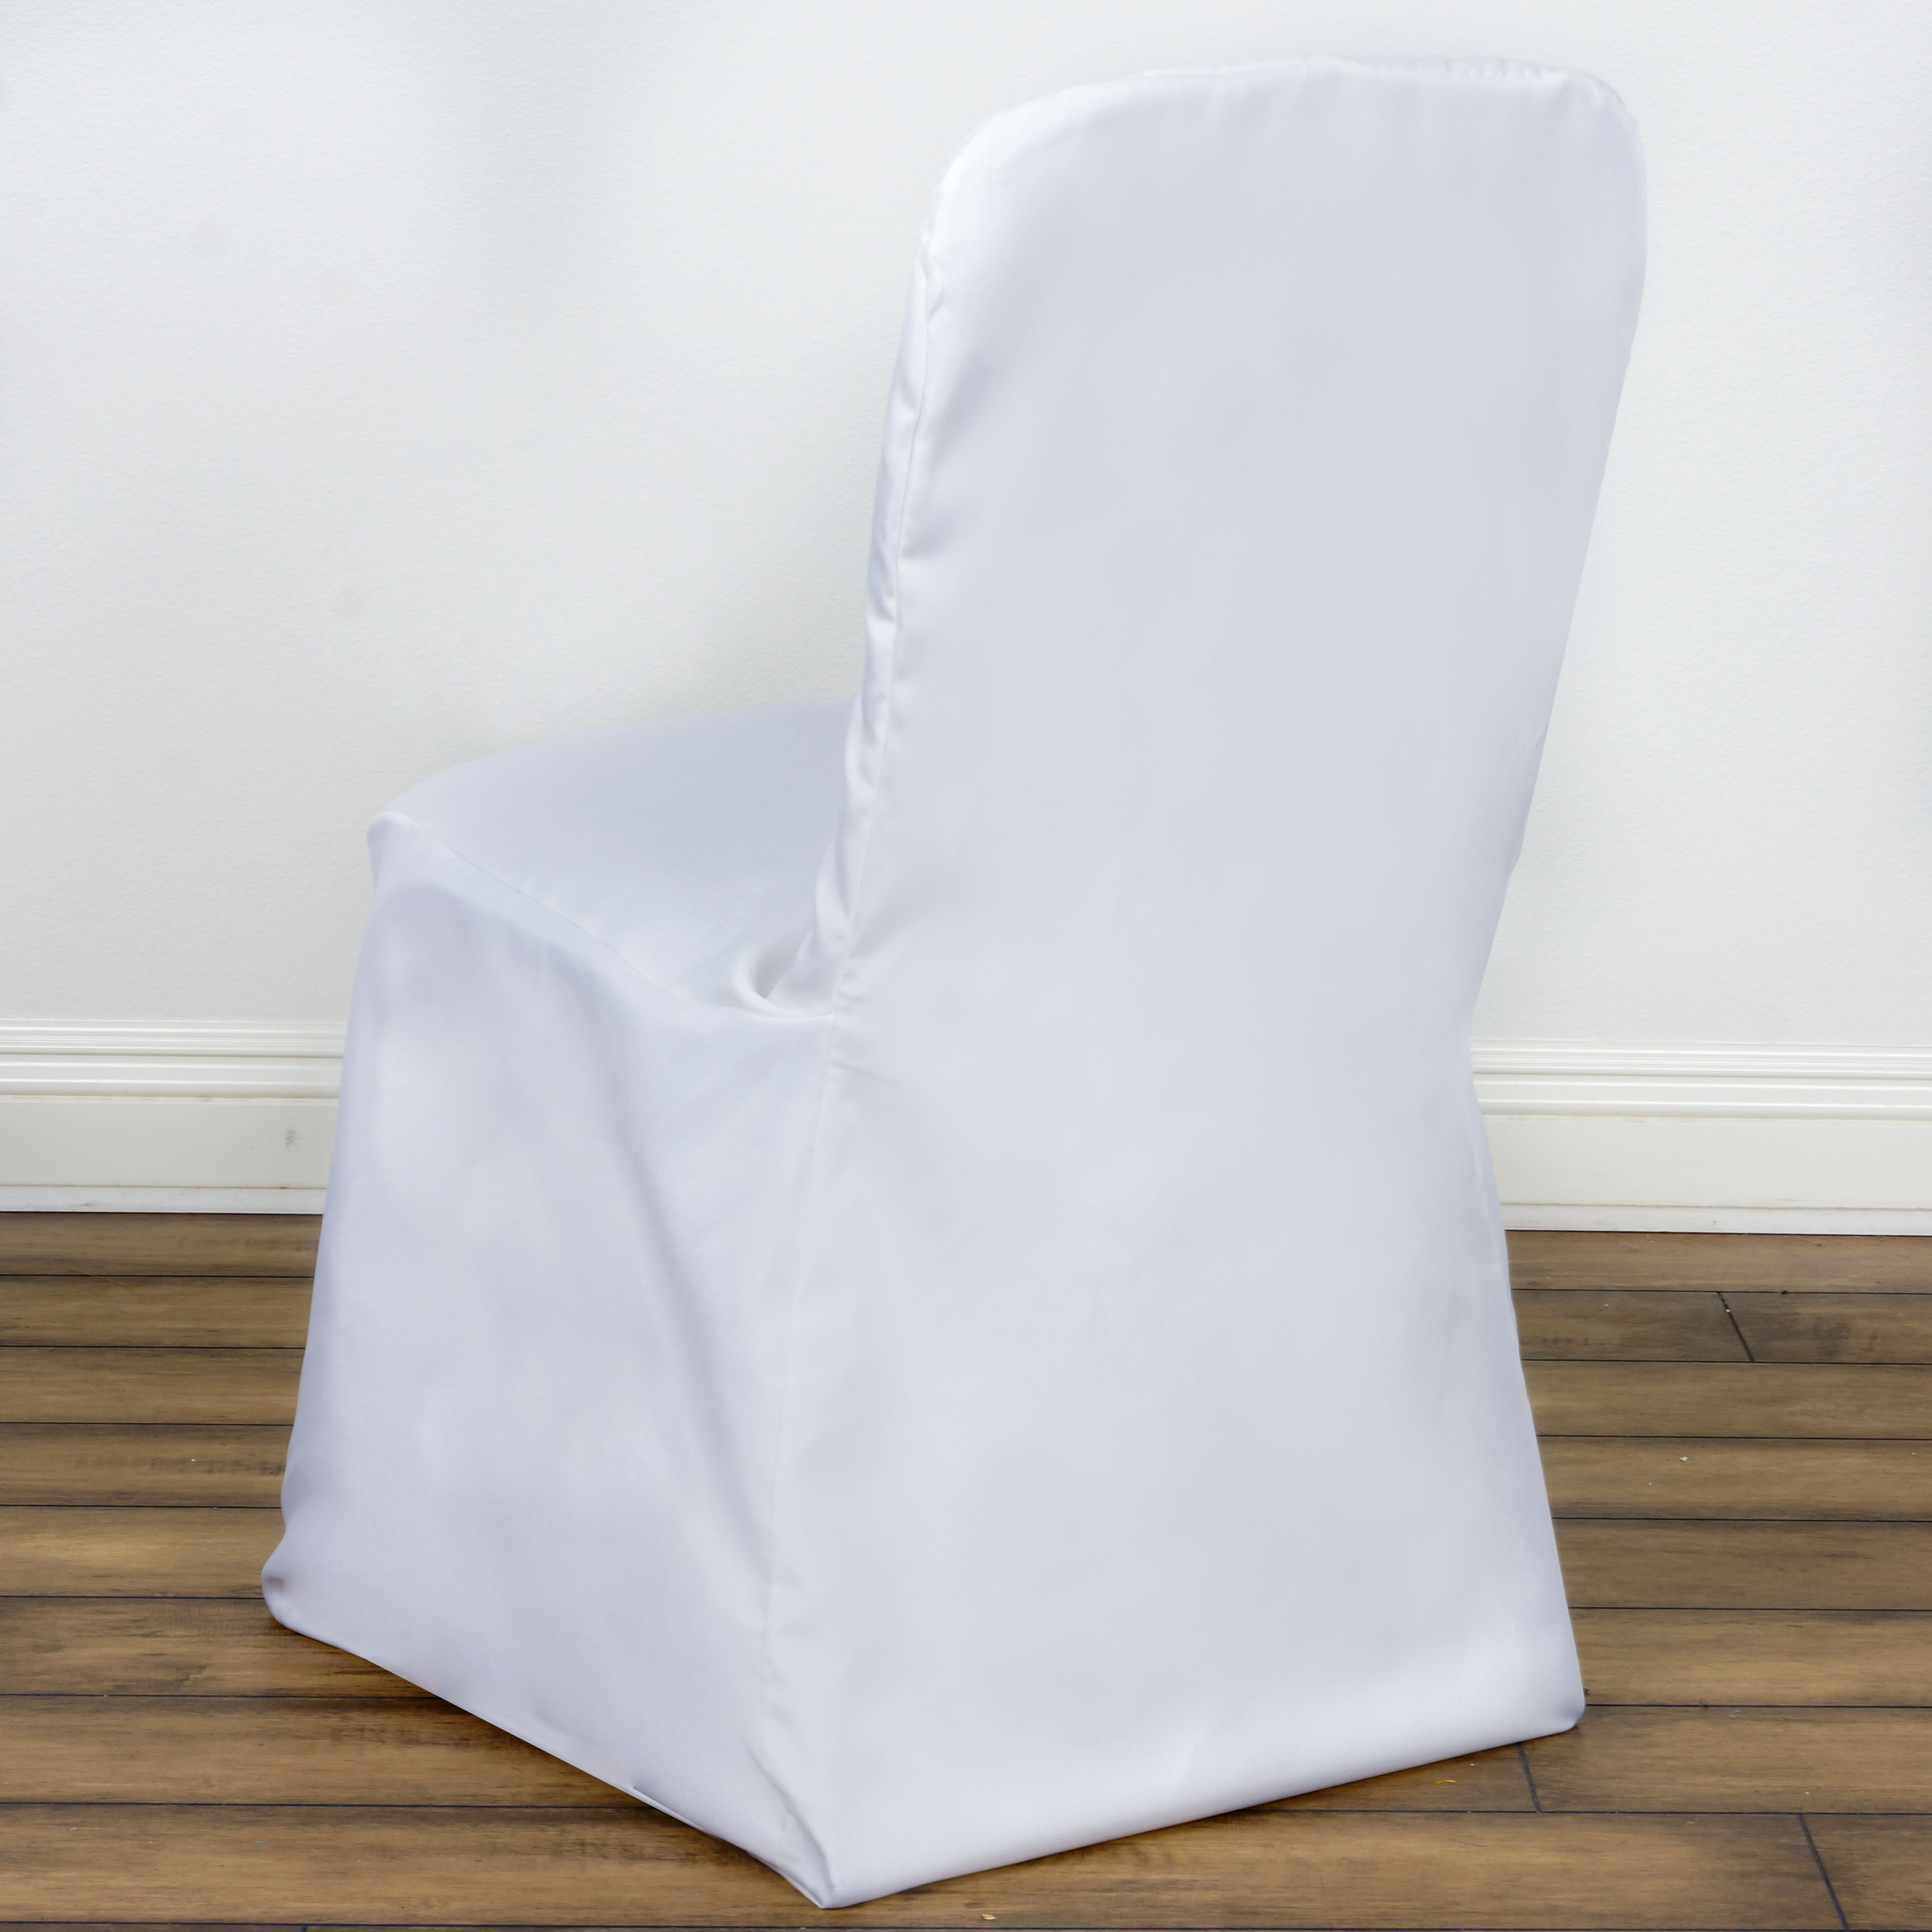 50 pcs SQUARE TOP POLYESTER BANQUET CHAIR COVERS Party Wedding